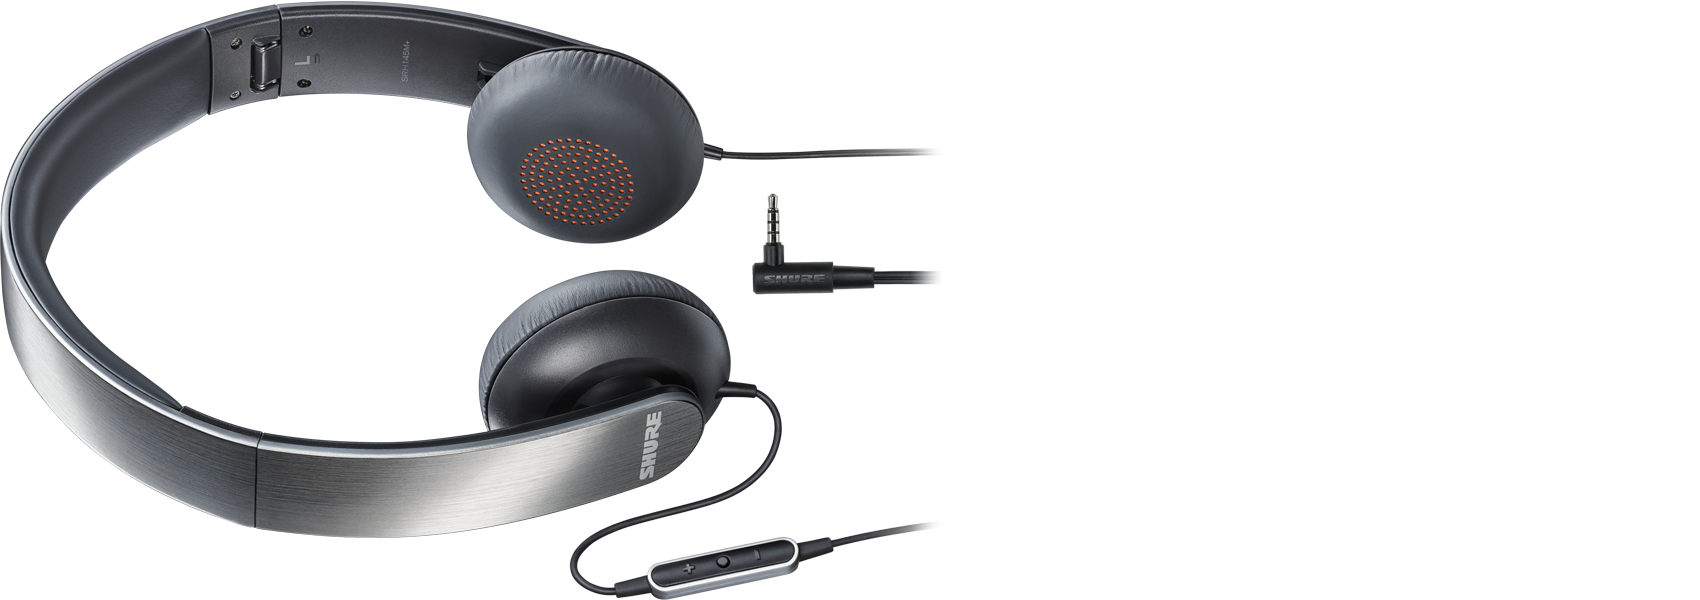 Illustration Shure SRH145m+ Portable Headphones With Remote + Mic